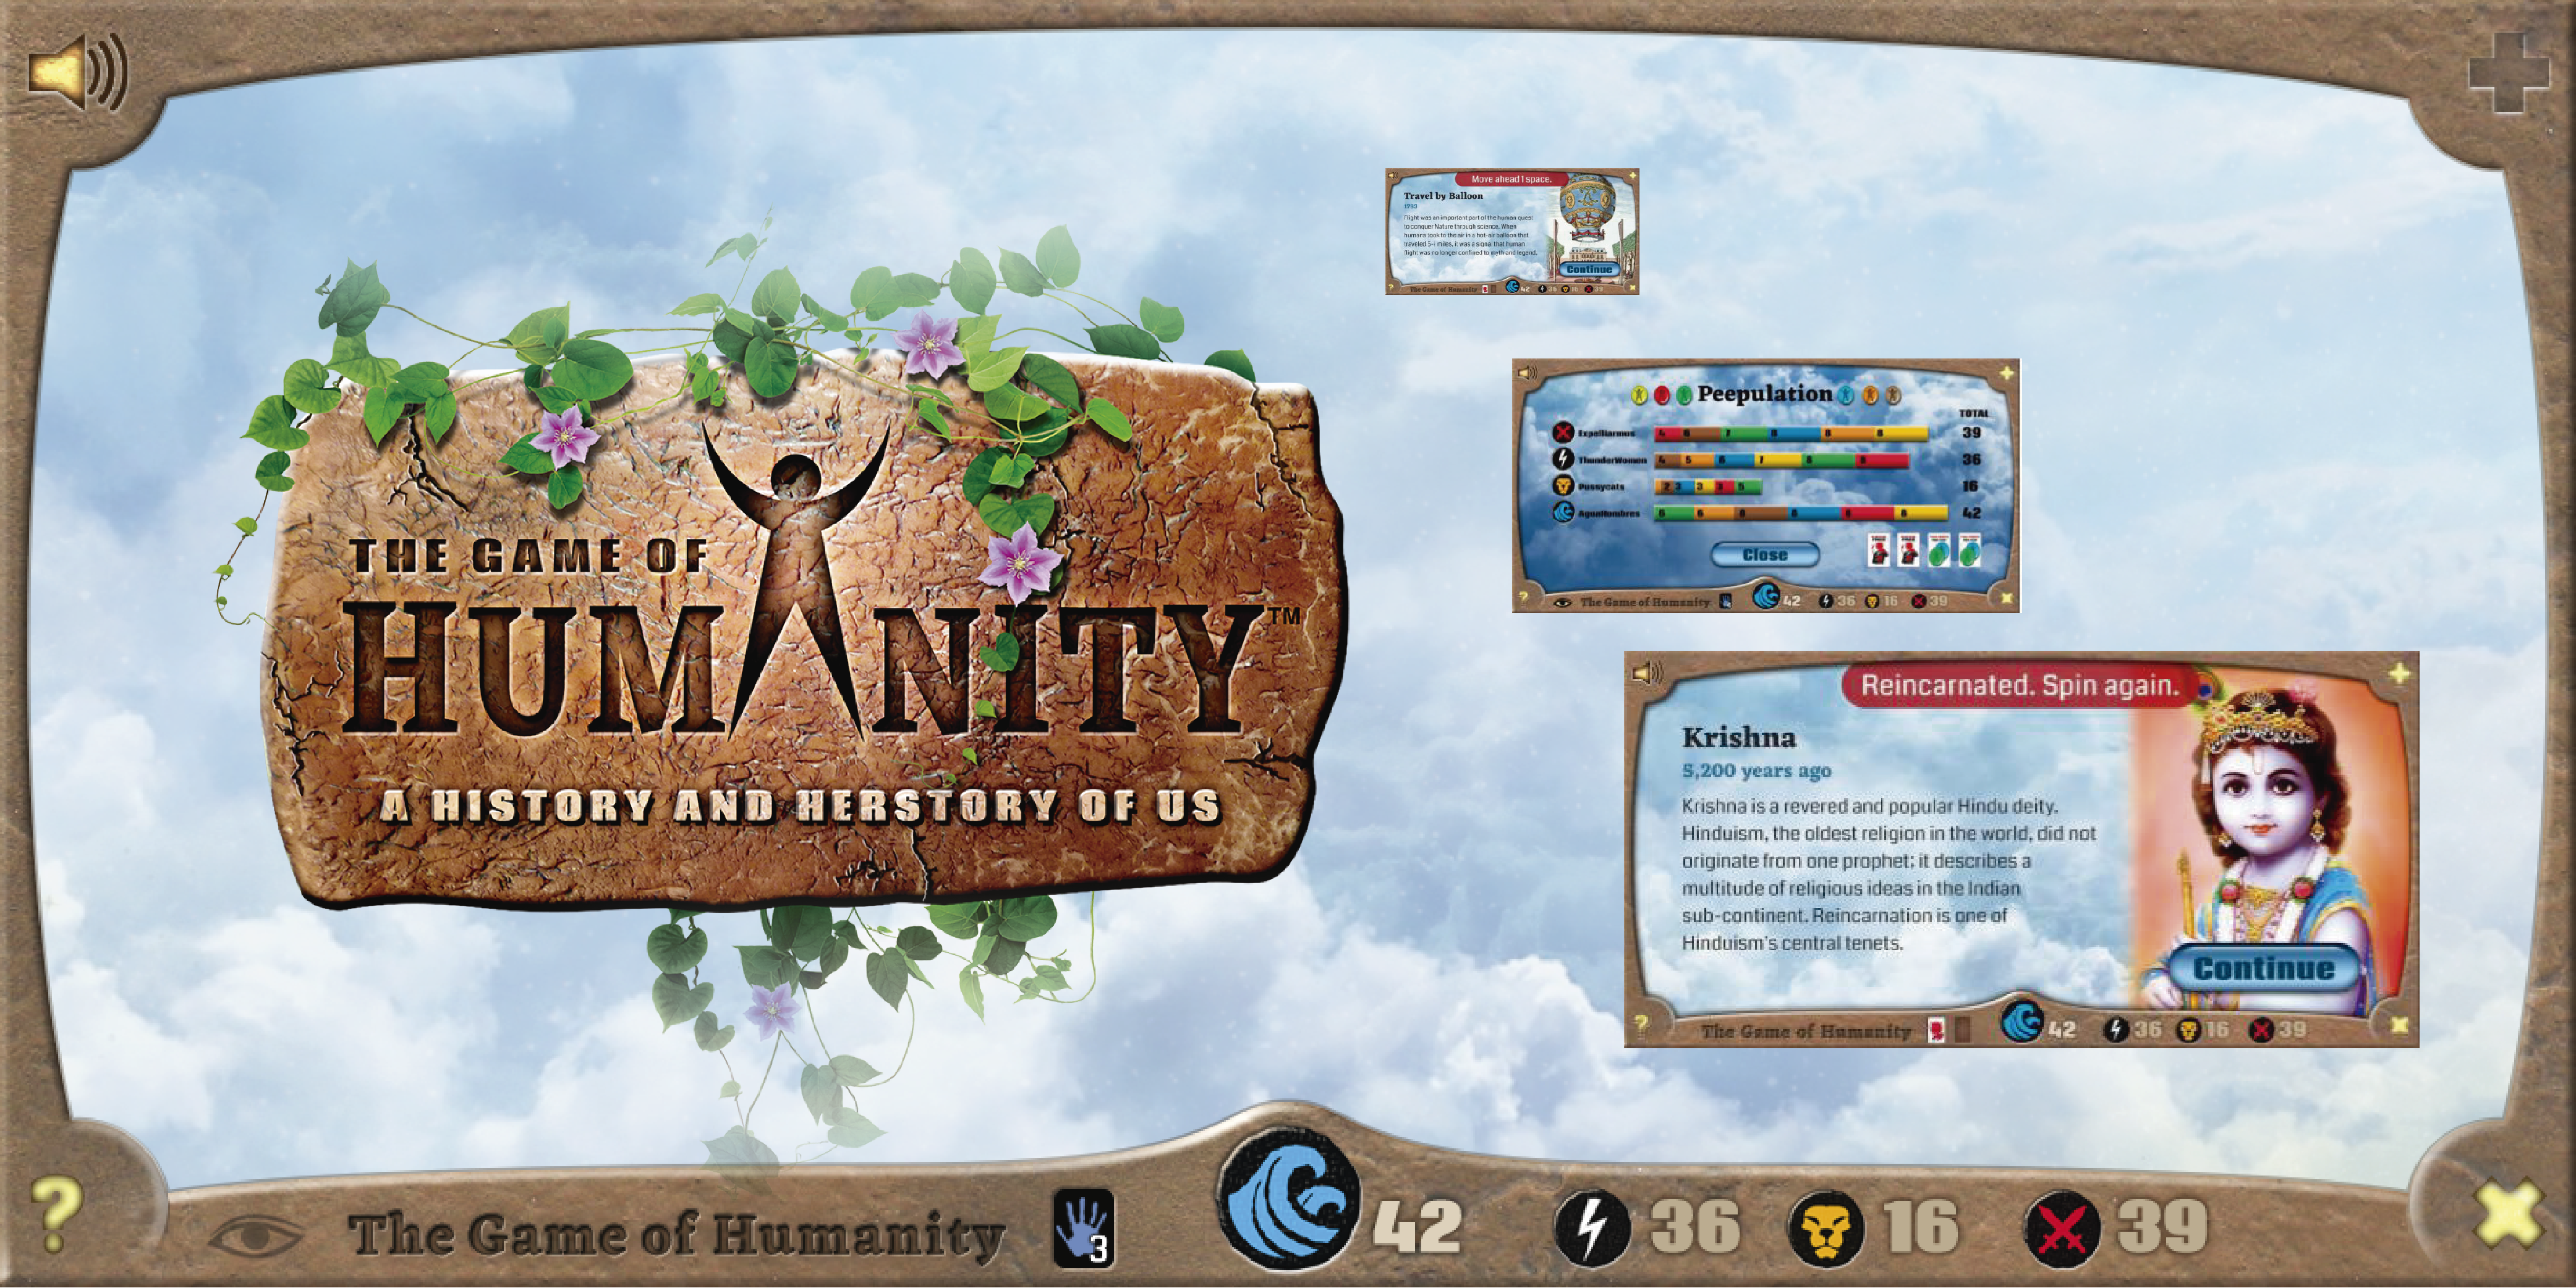 the game of humanity (Facebook ad)